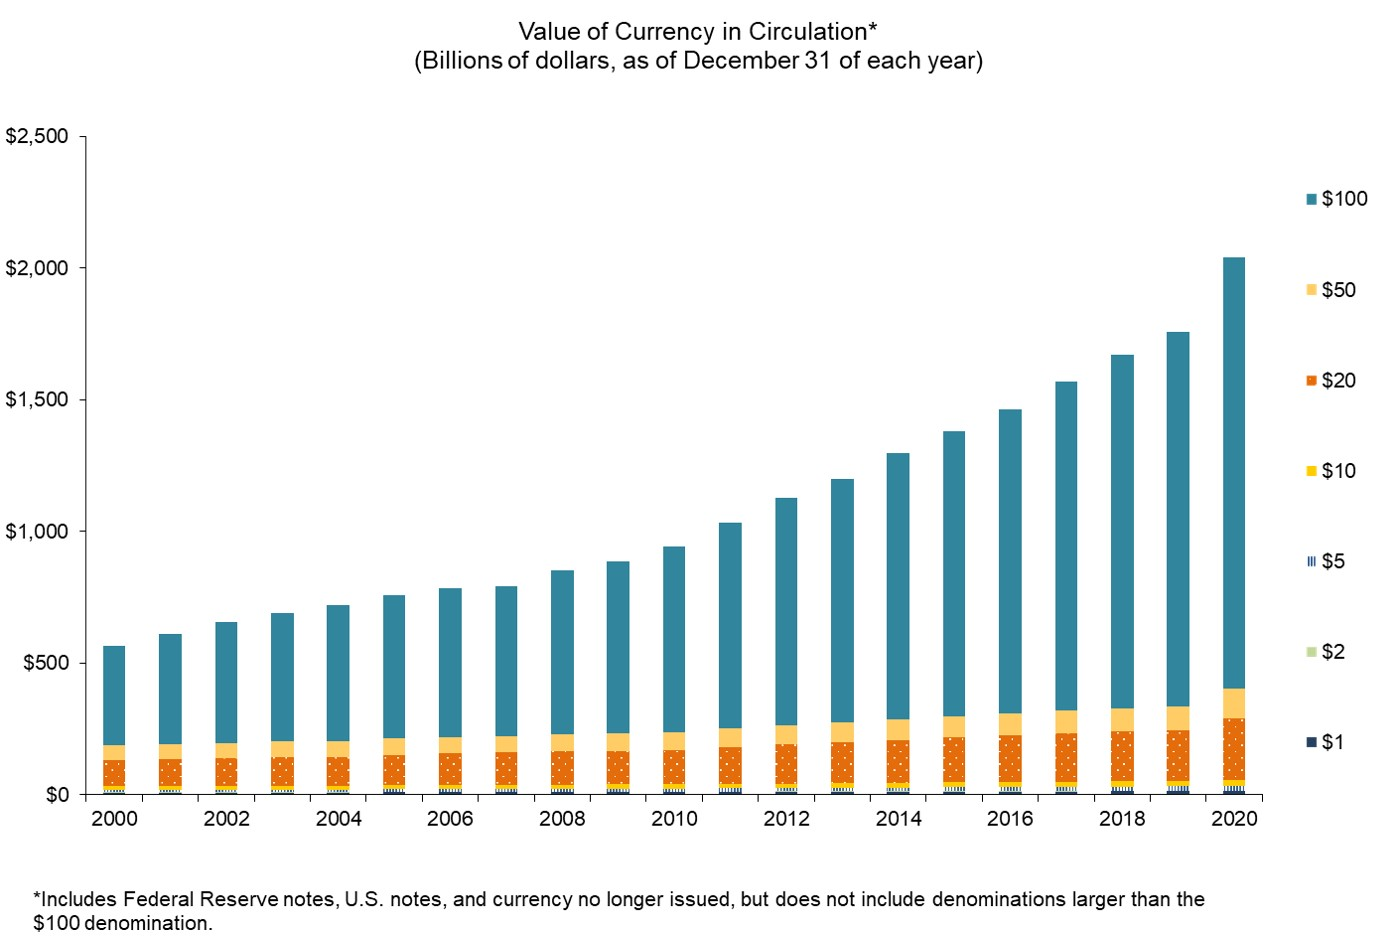 Chart of value of currency in circulation, excluding denominations larger than the $100 note. Details are in the Data table above.